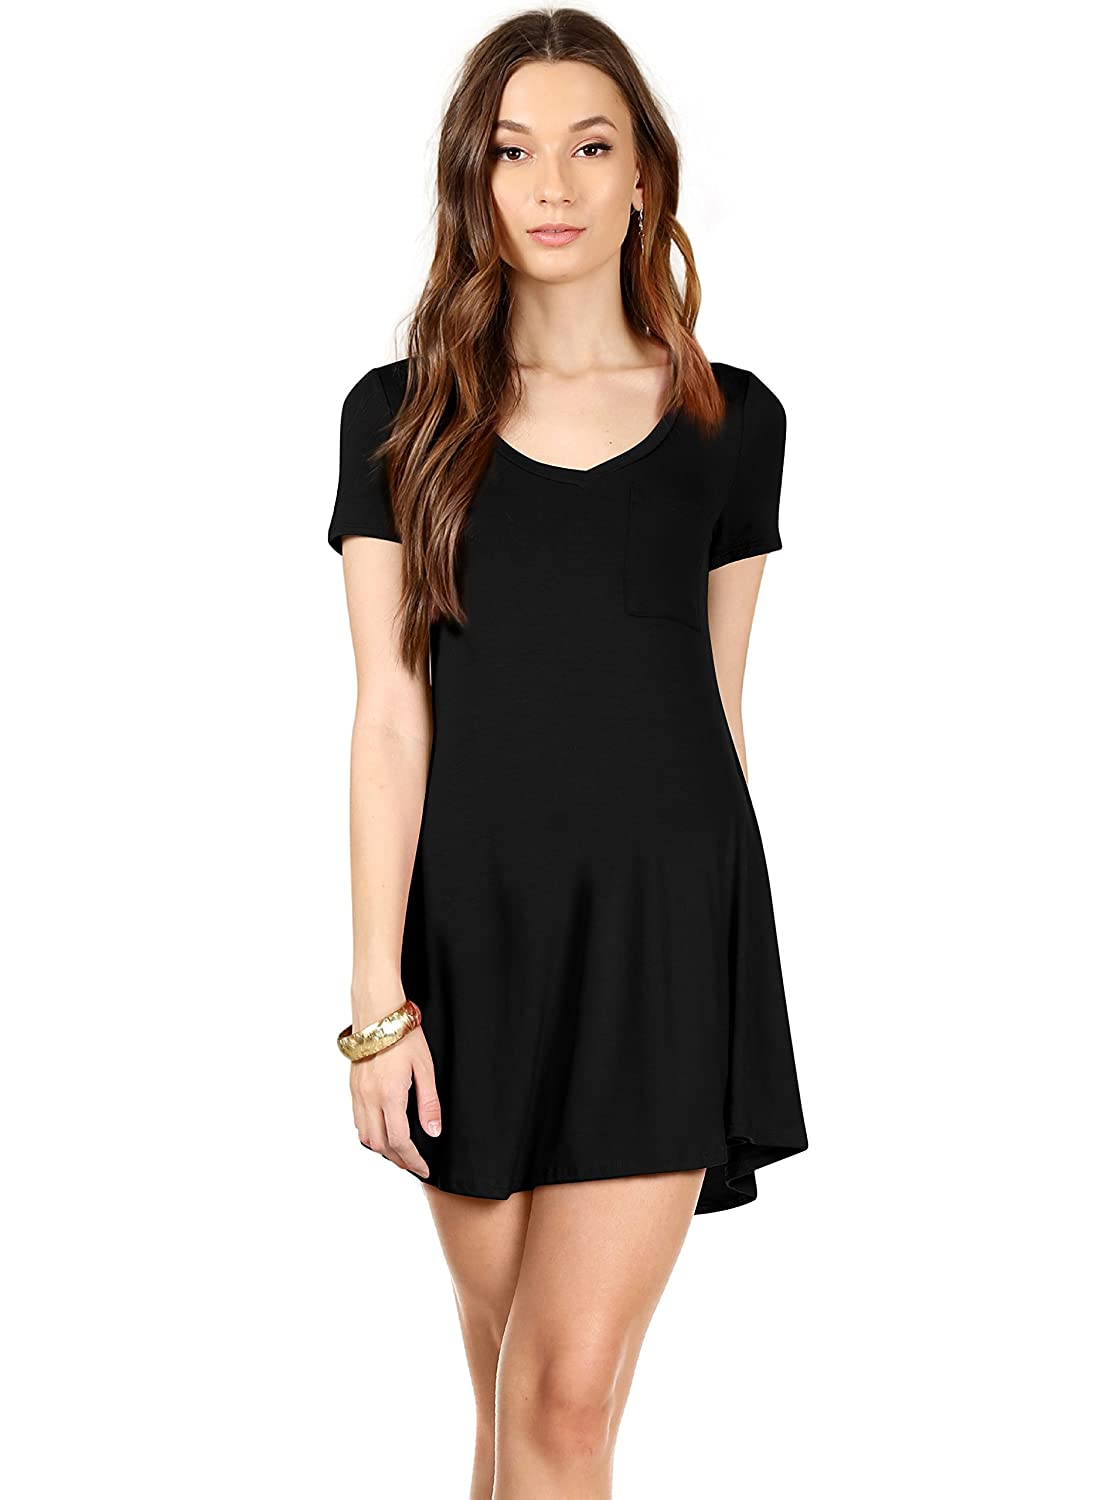 fdce6590178f QUALITY - These Jersey tunic dresses are composed of a high quality and  durable blend of Rayon and Spandex for a super soft feel with the perfect  ...